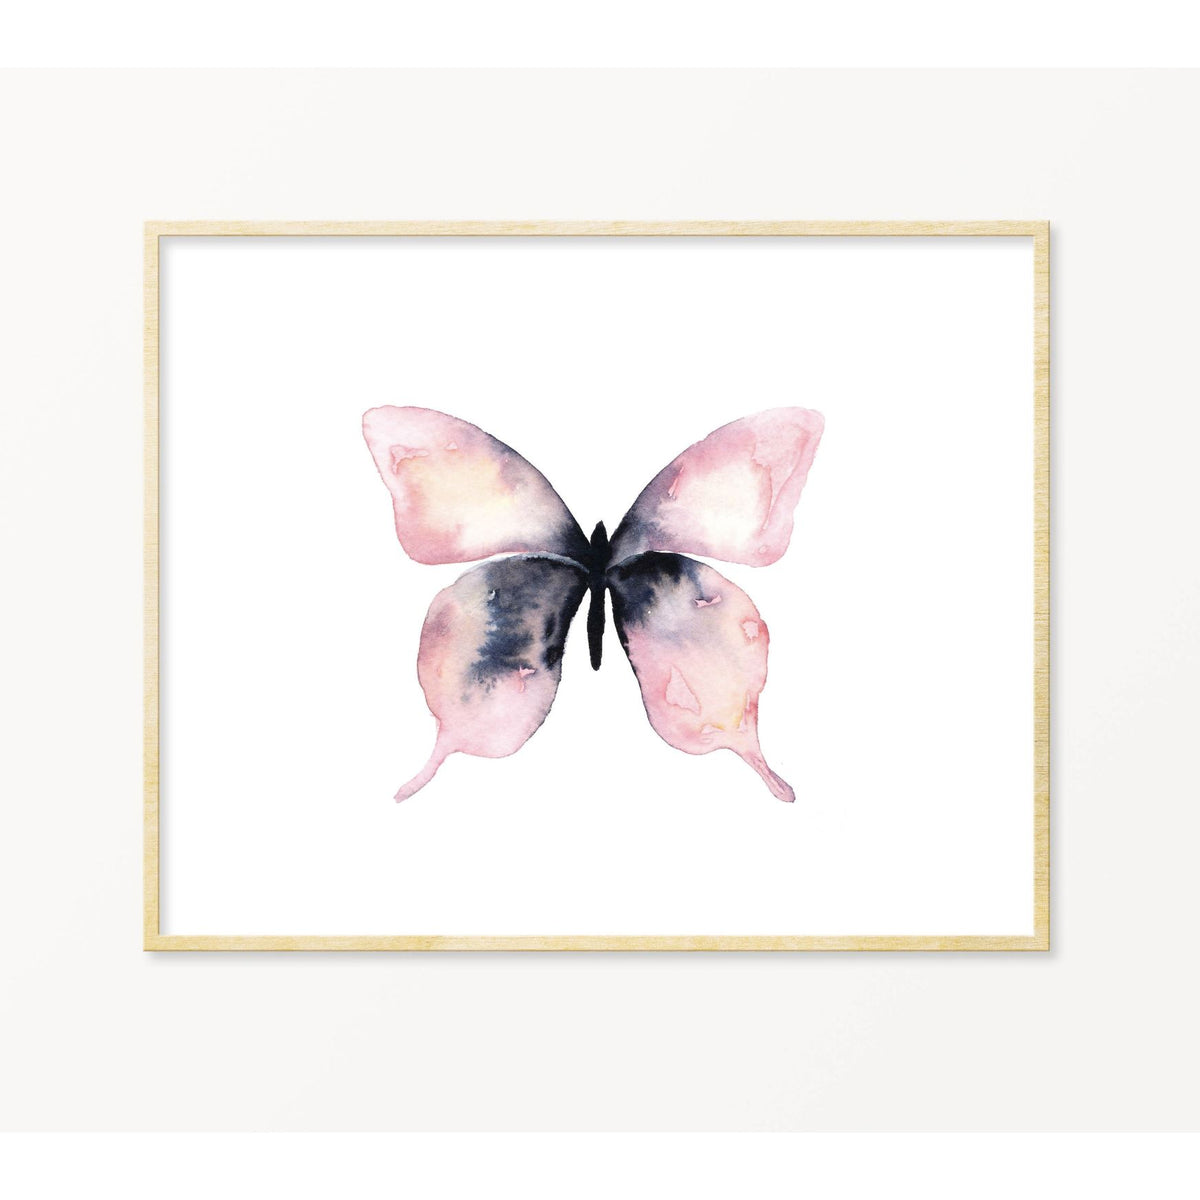 Lone Butterfly 🦋 #9 art print Snoogs & Wilde Art